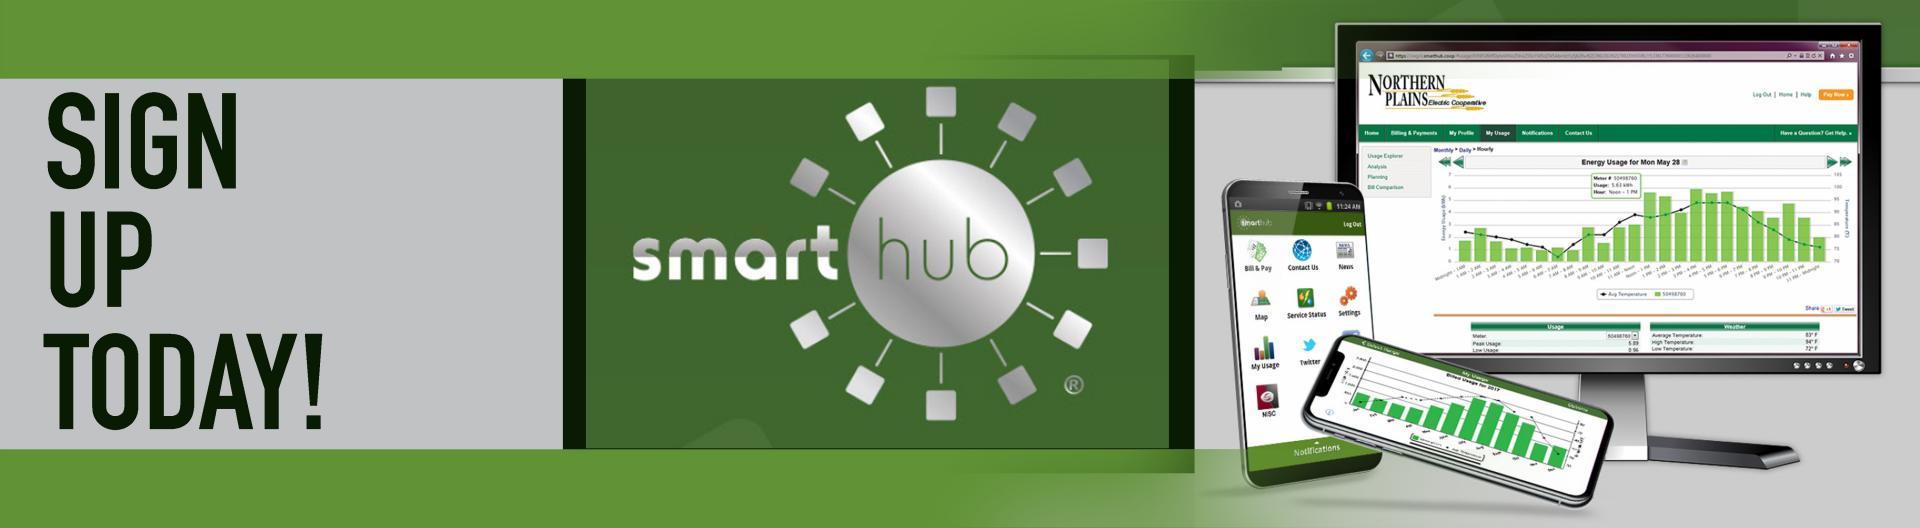 Sign up for SmartHub